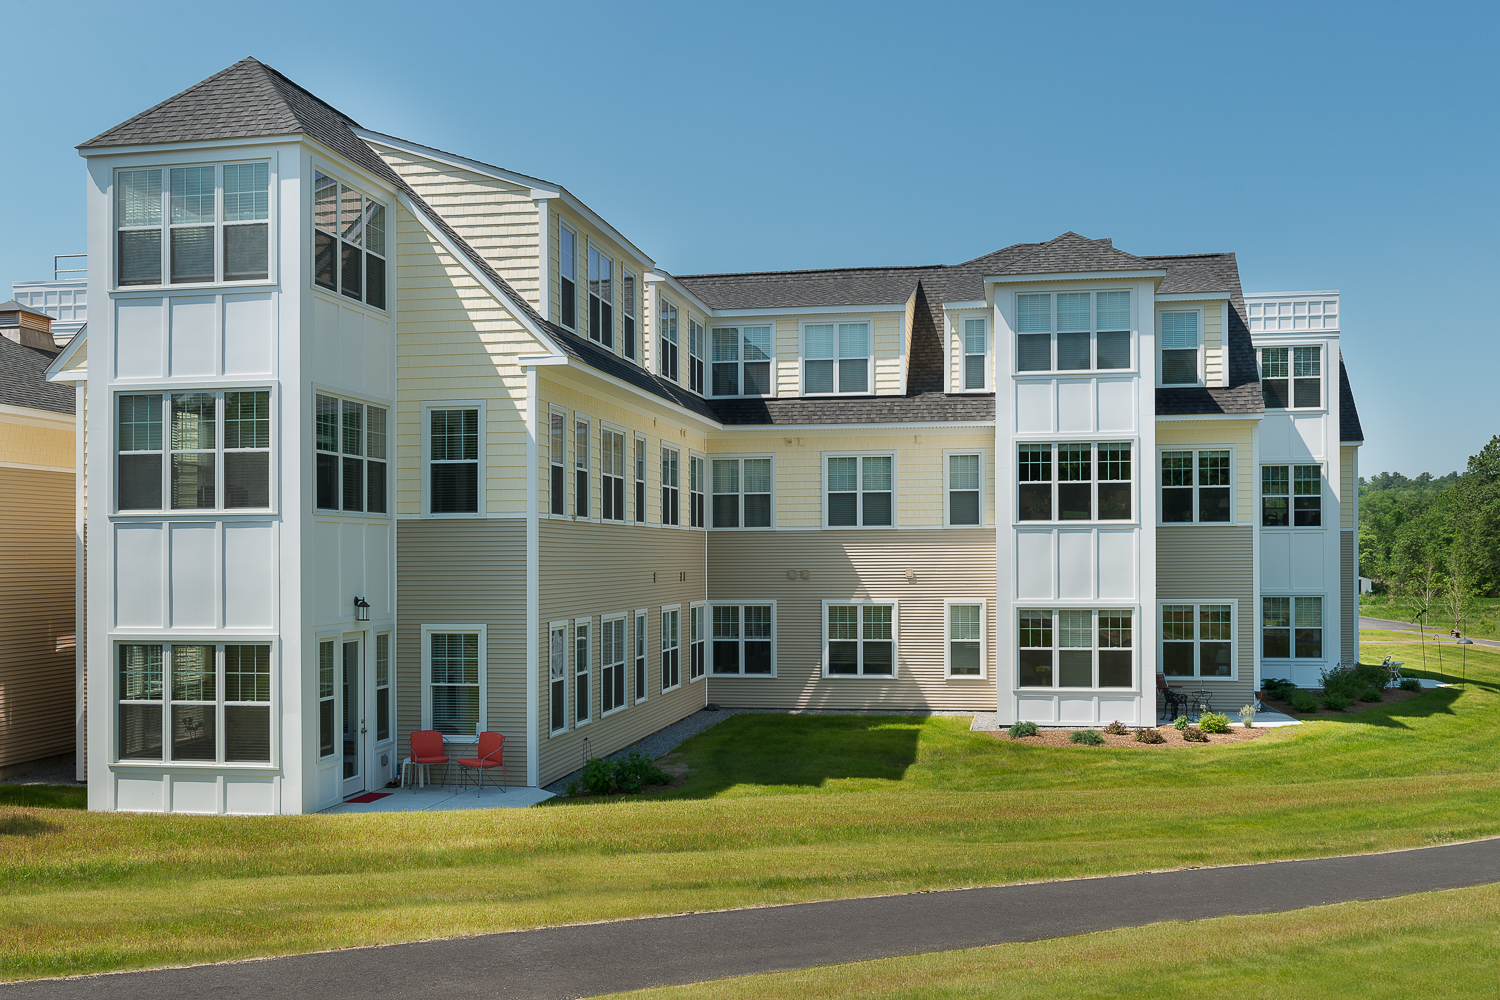 Rear exterior of independent living and walking path.